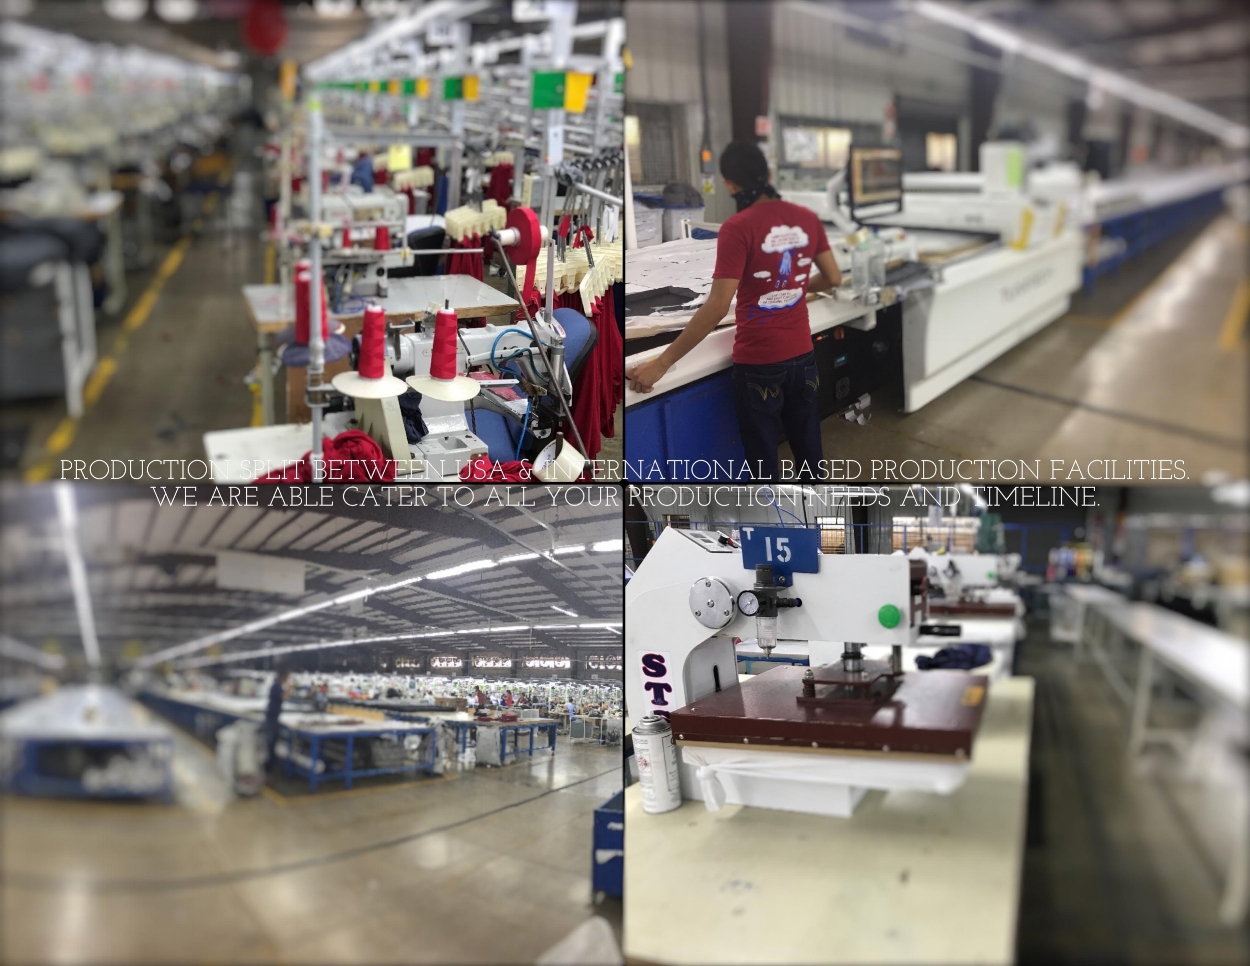 WE MANUFACTURE IN THE USA AND ALSO IN OUR INTERNATIONAL BASED PRODUCTION FACILITIES.